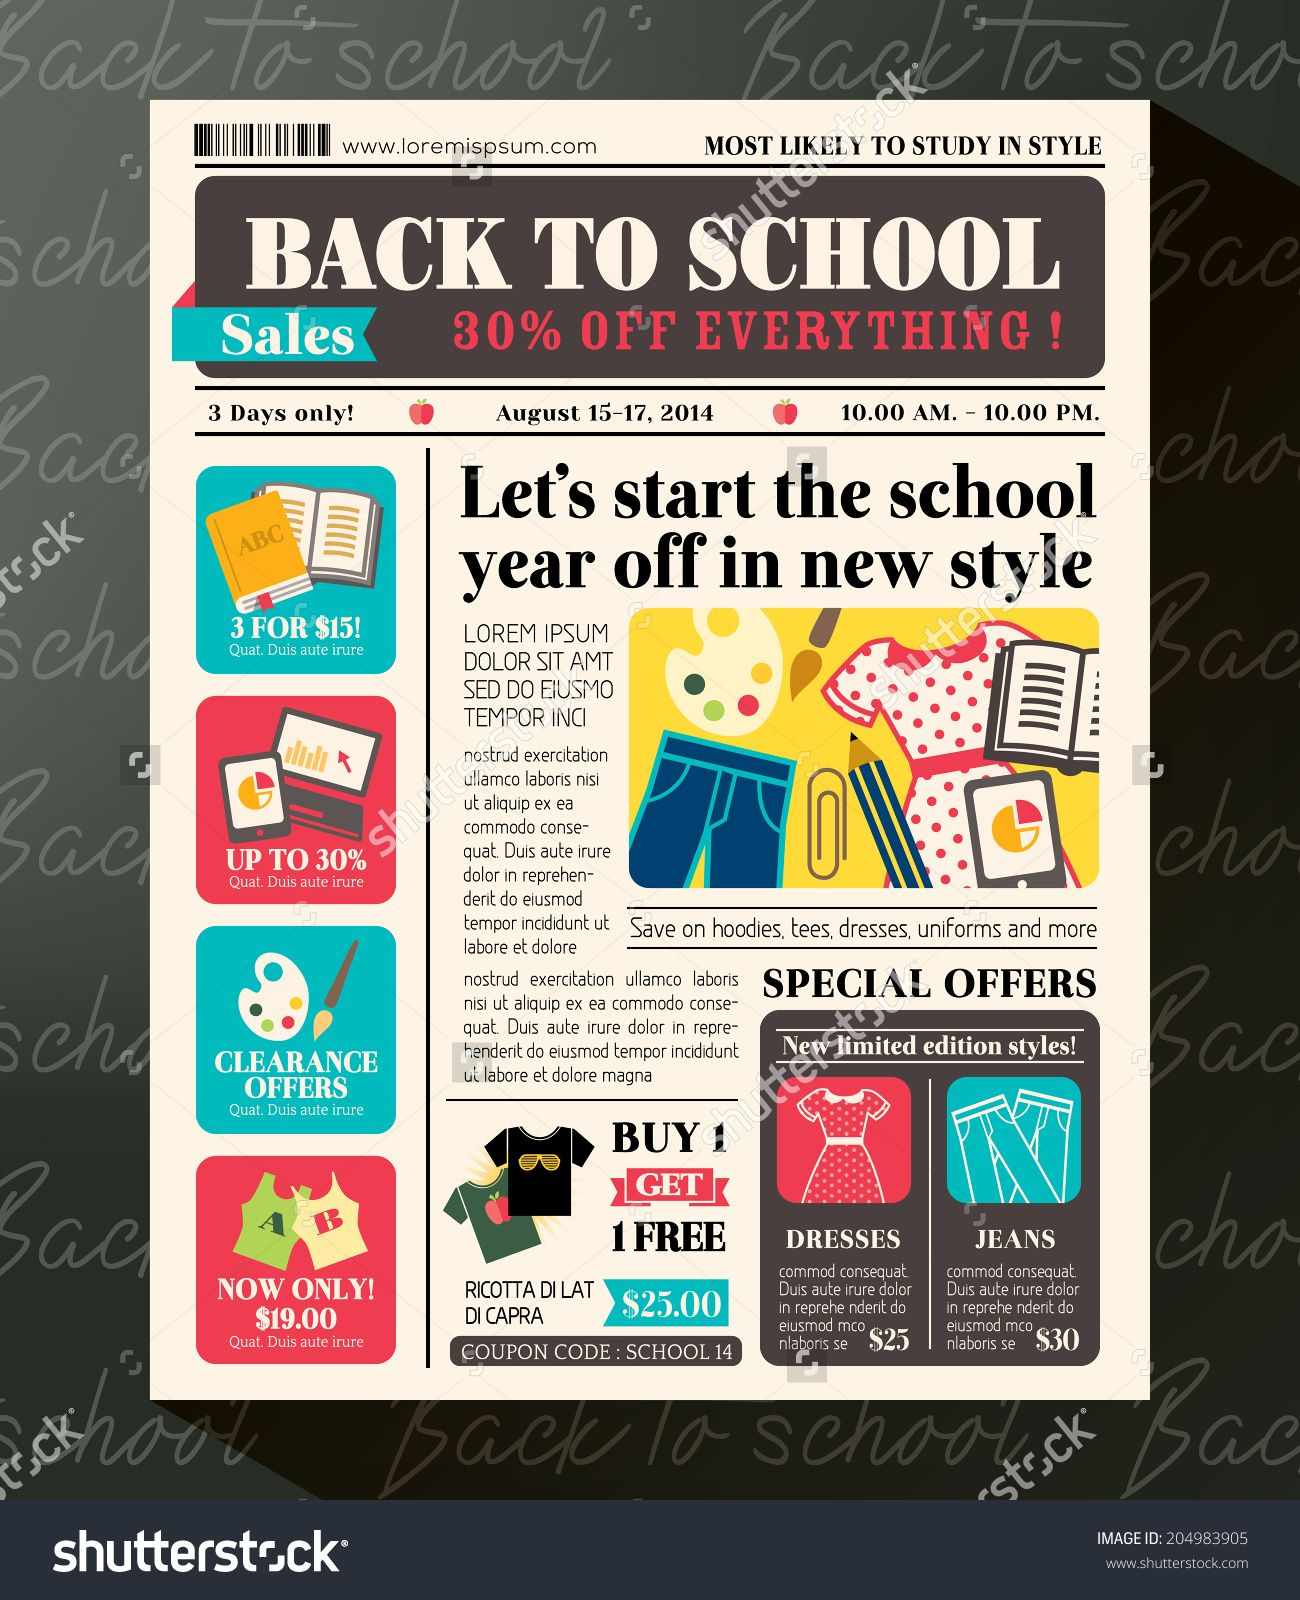 Back to school sales promotional design template in newspaper back to school sales promotional design template in newspaper journal style fandeluxe Image collections